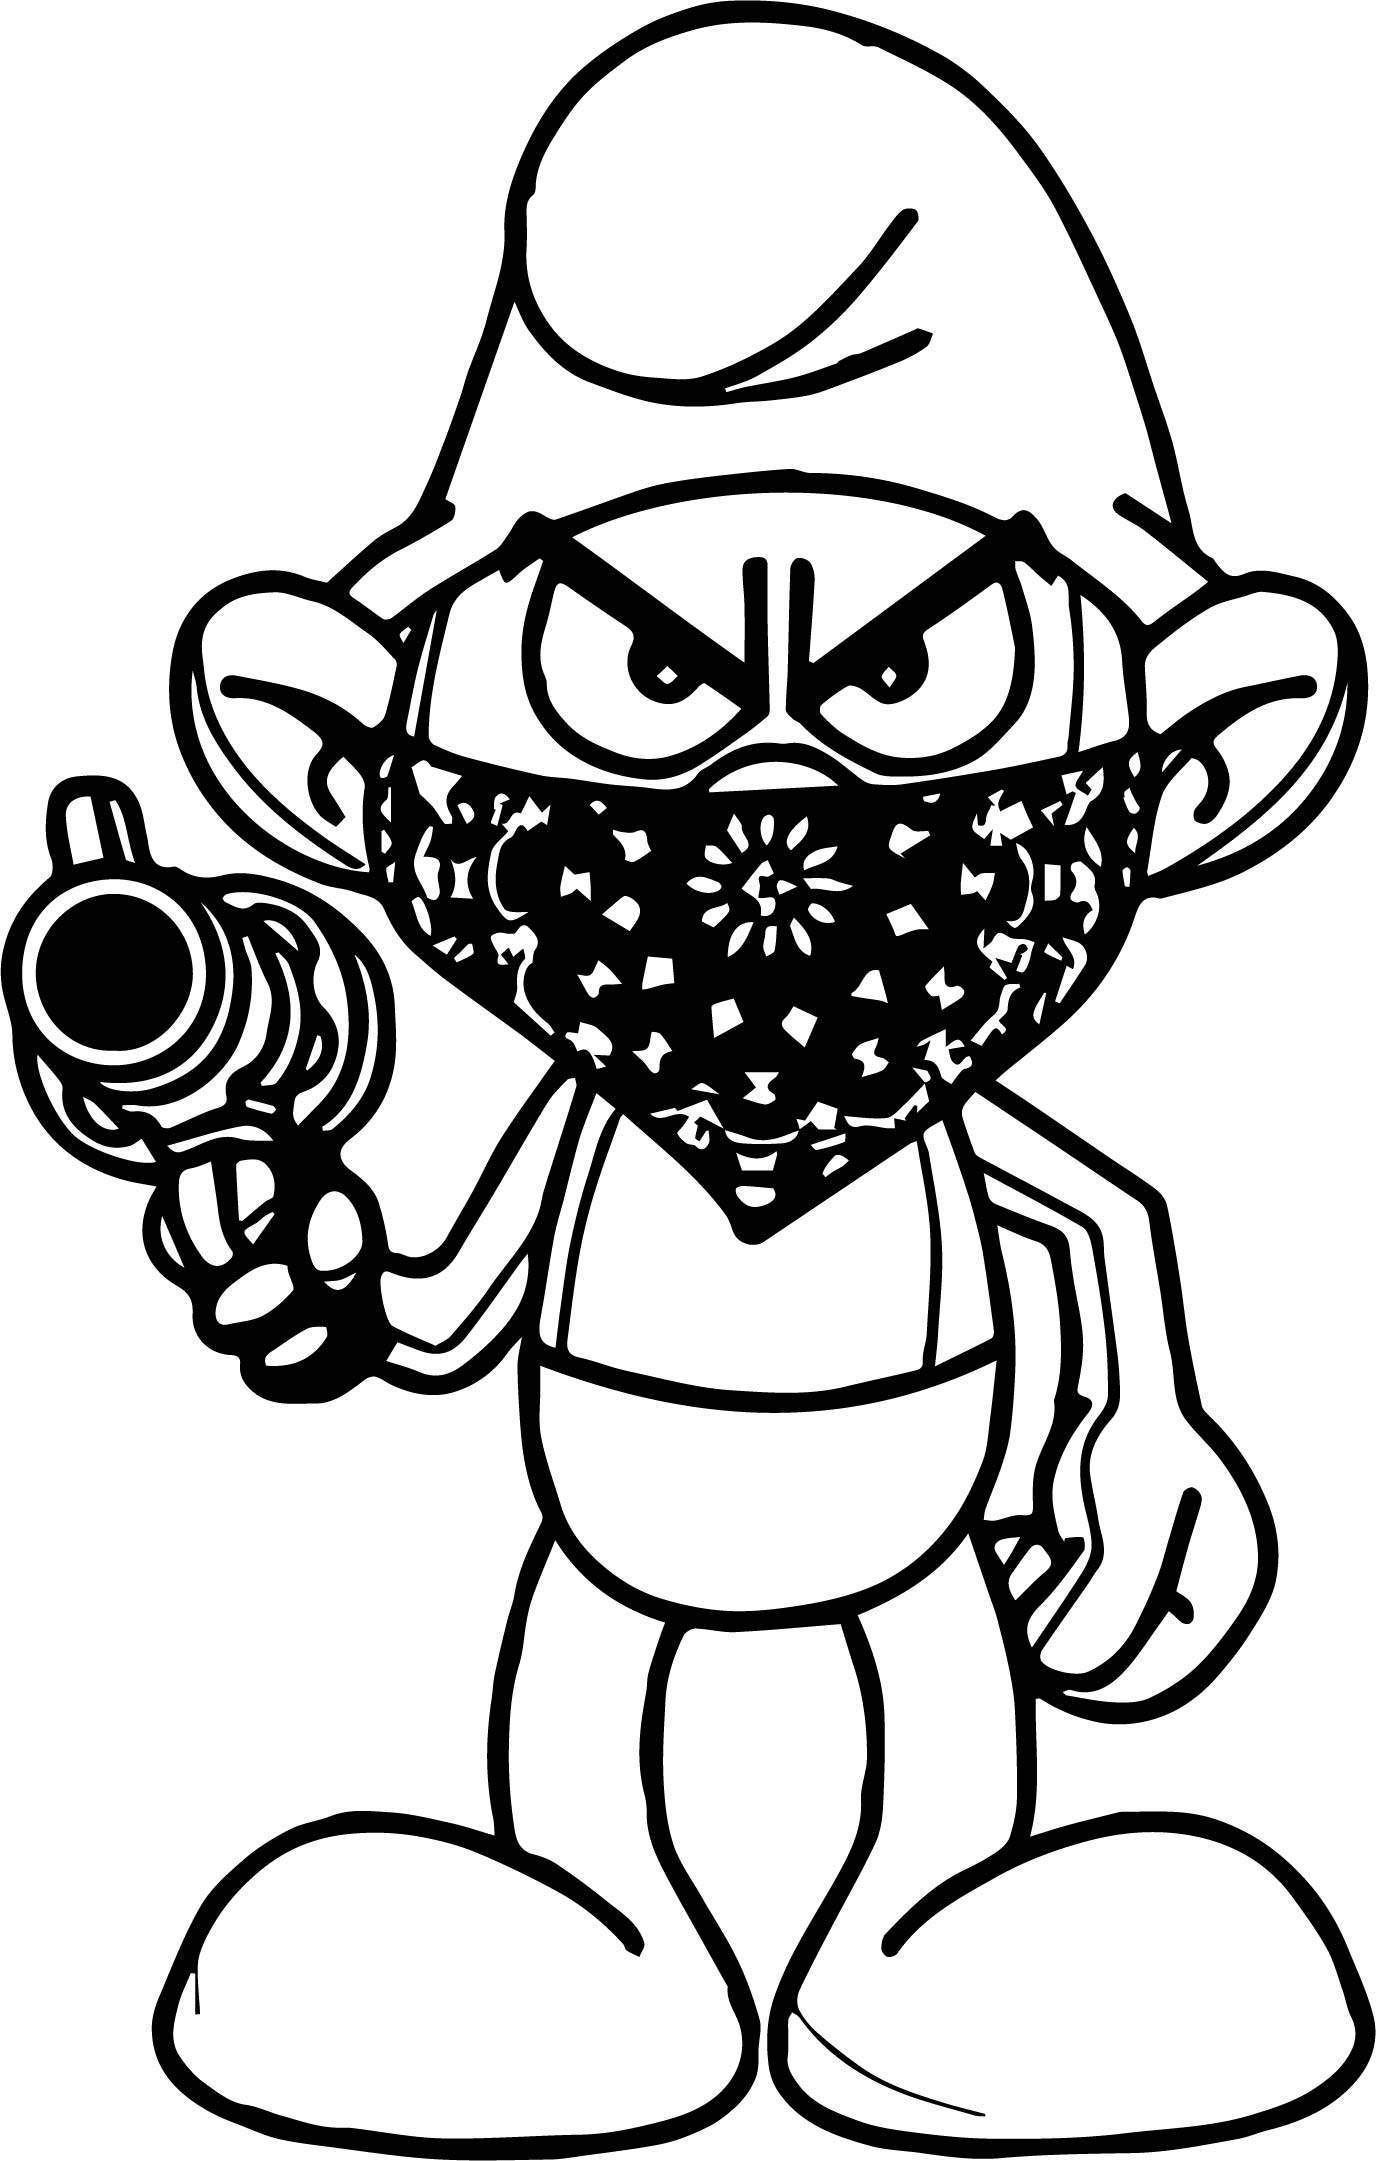 gangsta simpsons coloring pages thug life coloring pages at getcoloringscom free pages coloring gangsta simpsons